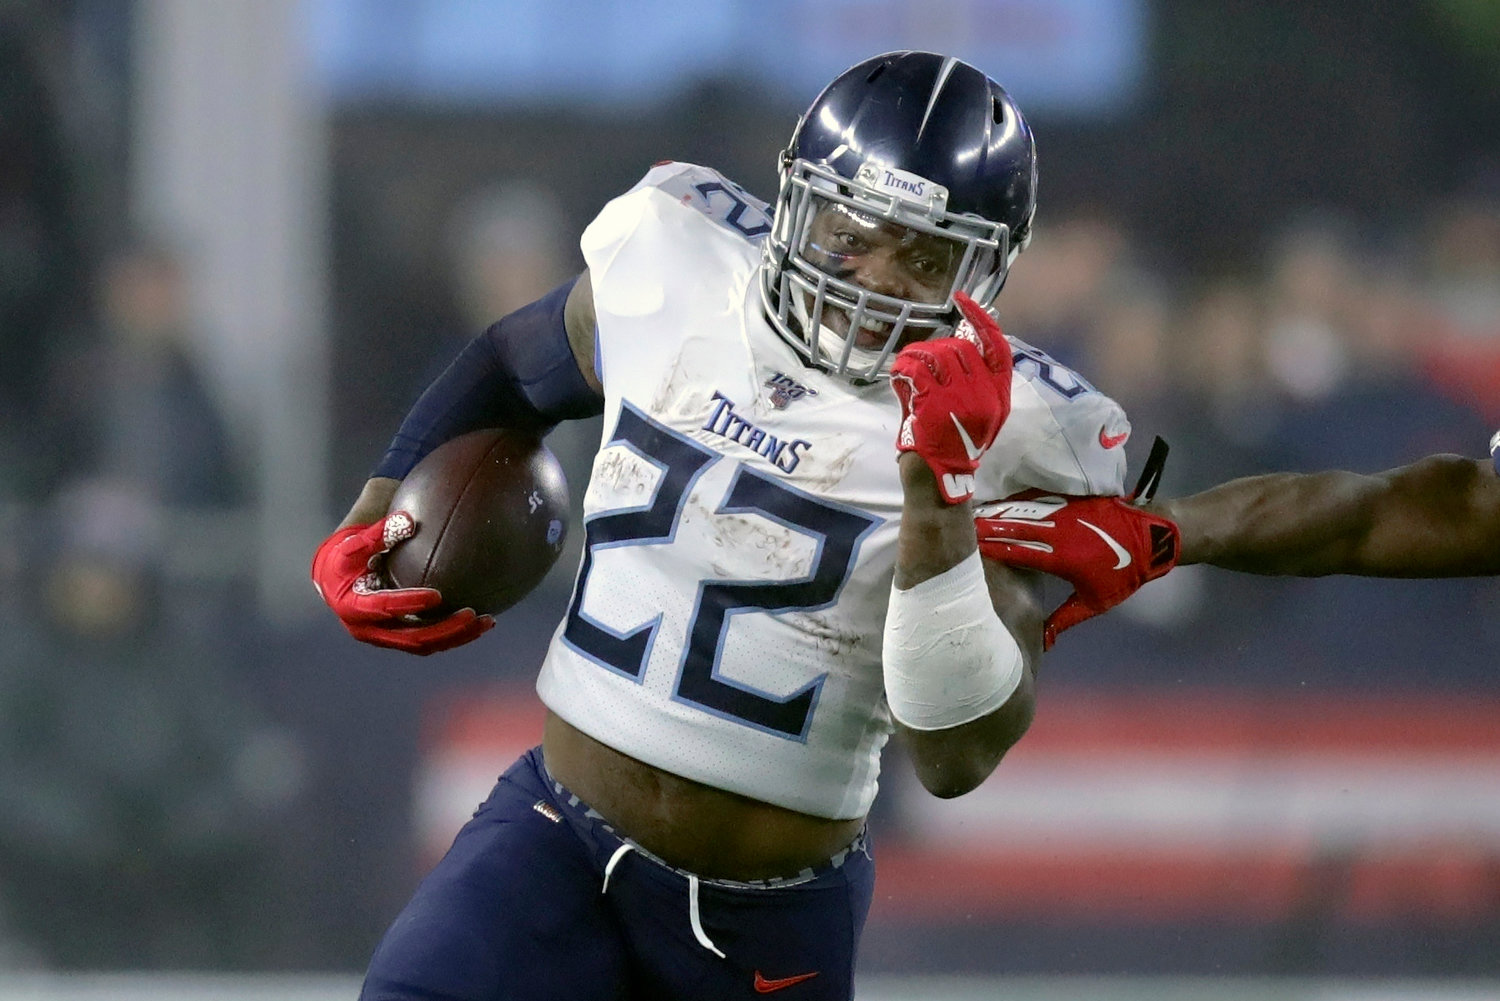 Tennessee Titans running back Derrick Henry runs from New England Patriots safety Duron Harmon, right, in the first half of an NFL wild-card playoff football game, Saturday, Jan. 4, 2020, in Foxborough, Mass. (AP Photo/Charles Krupa)